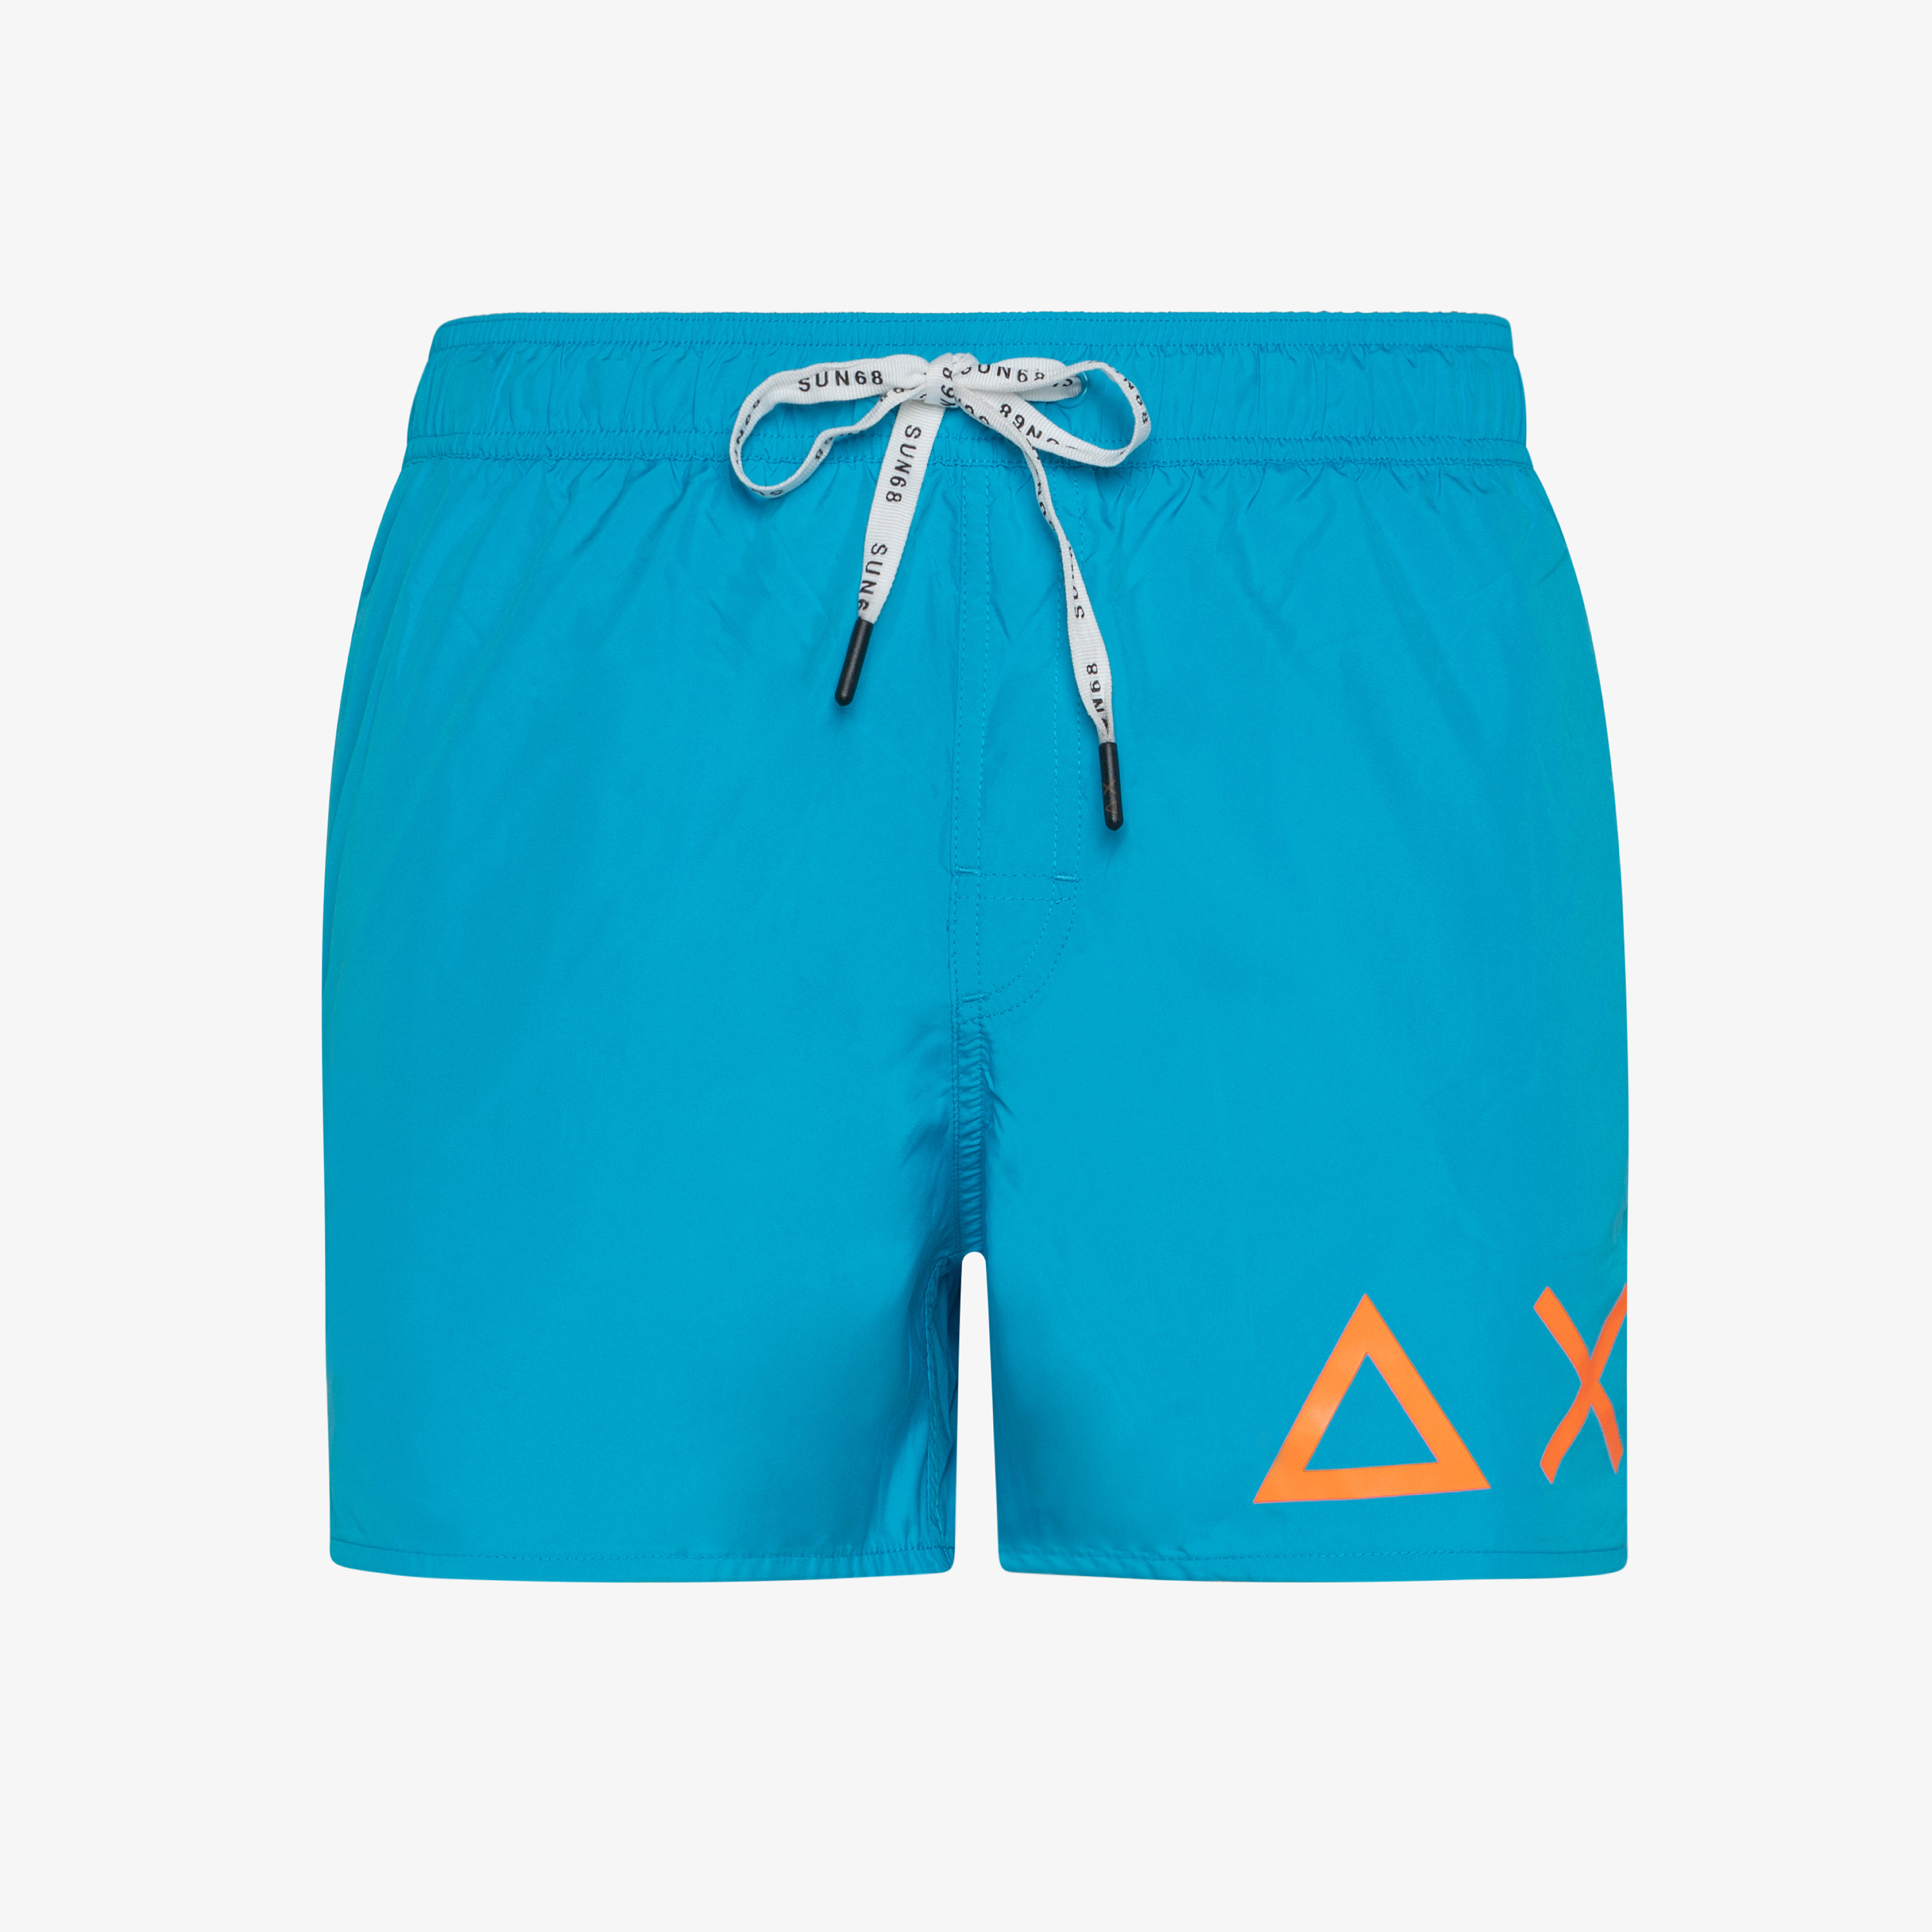 SWIM PANT SOLID BIG LOGO BLUE FLUO